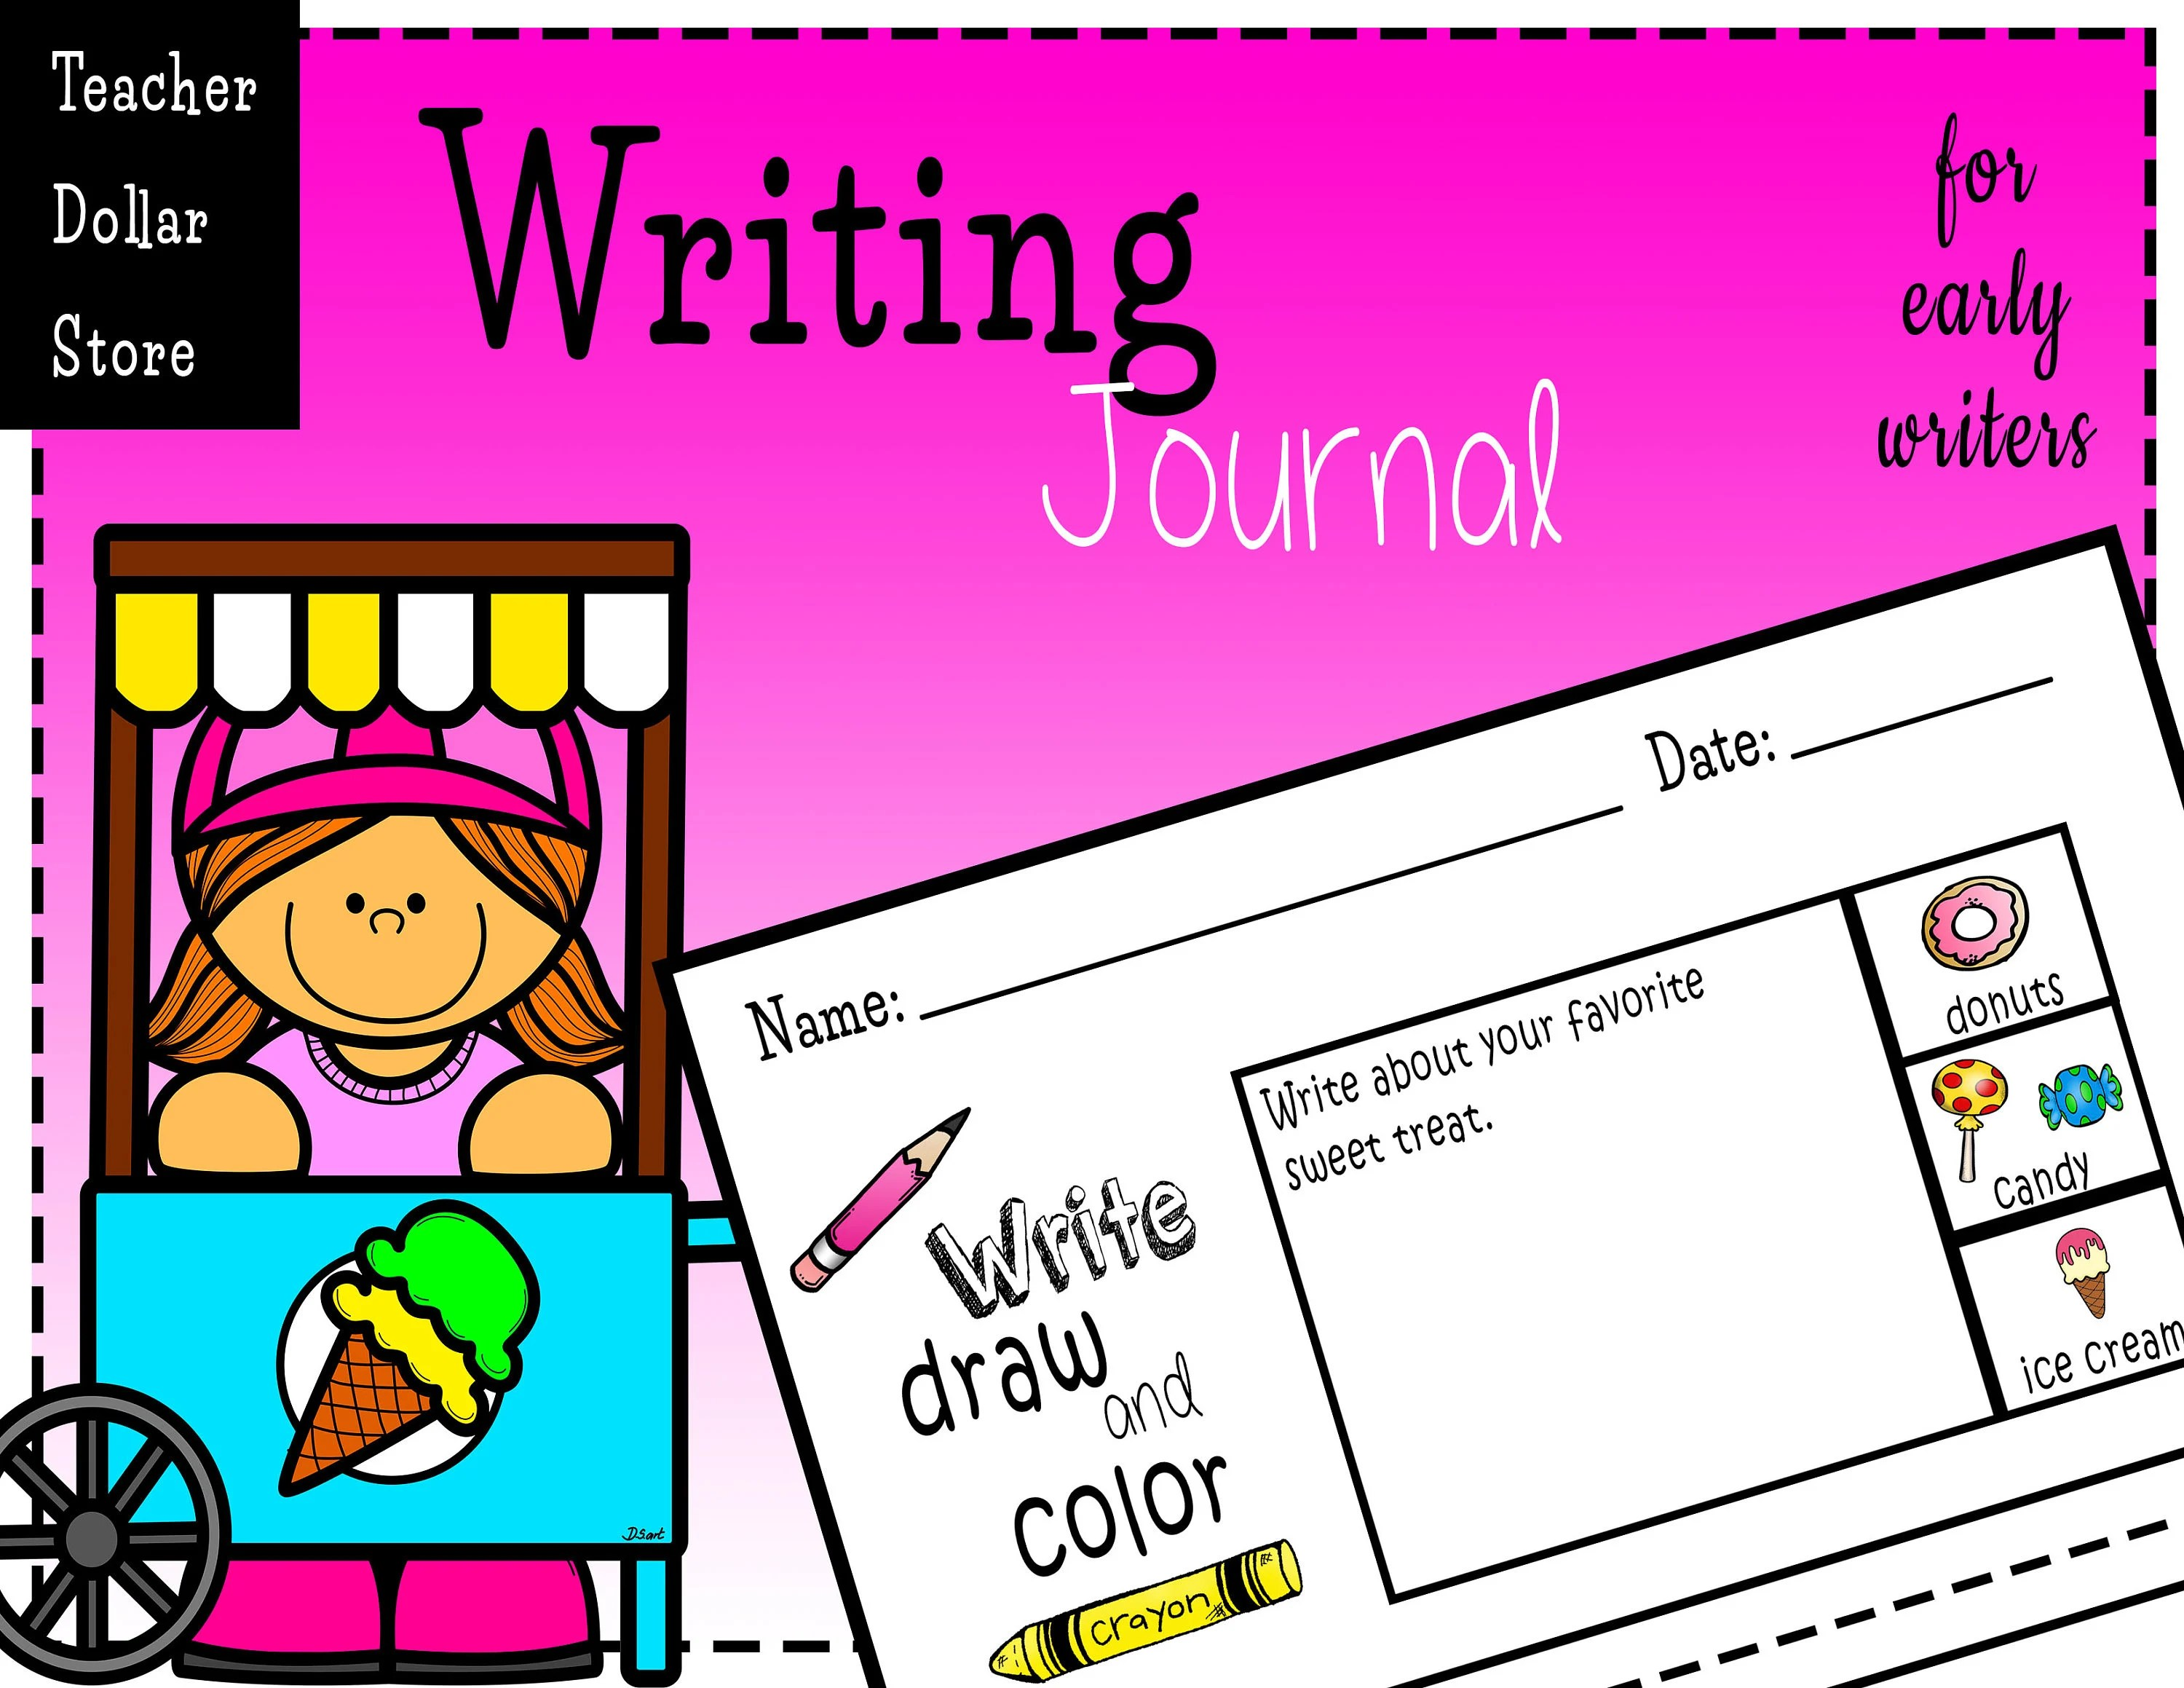 Worksheets Writing Journals For Early Writers